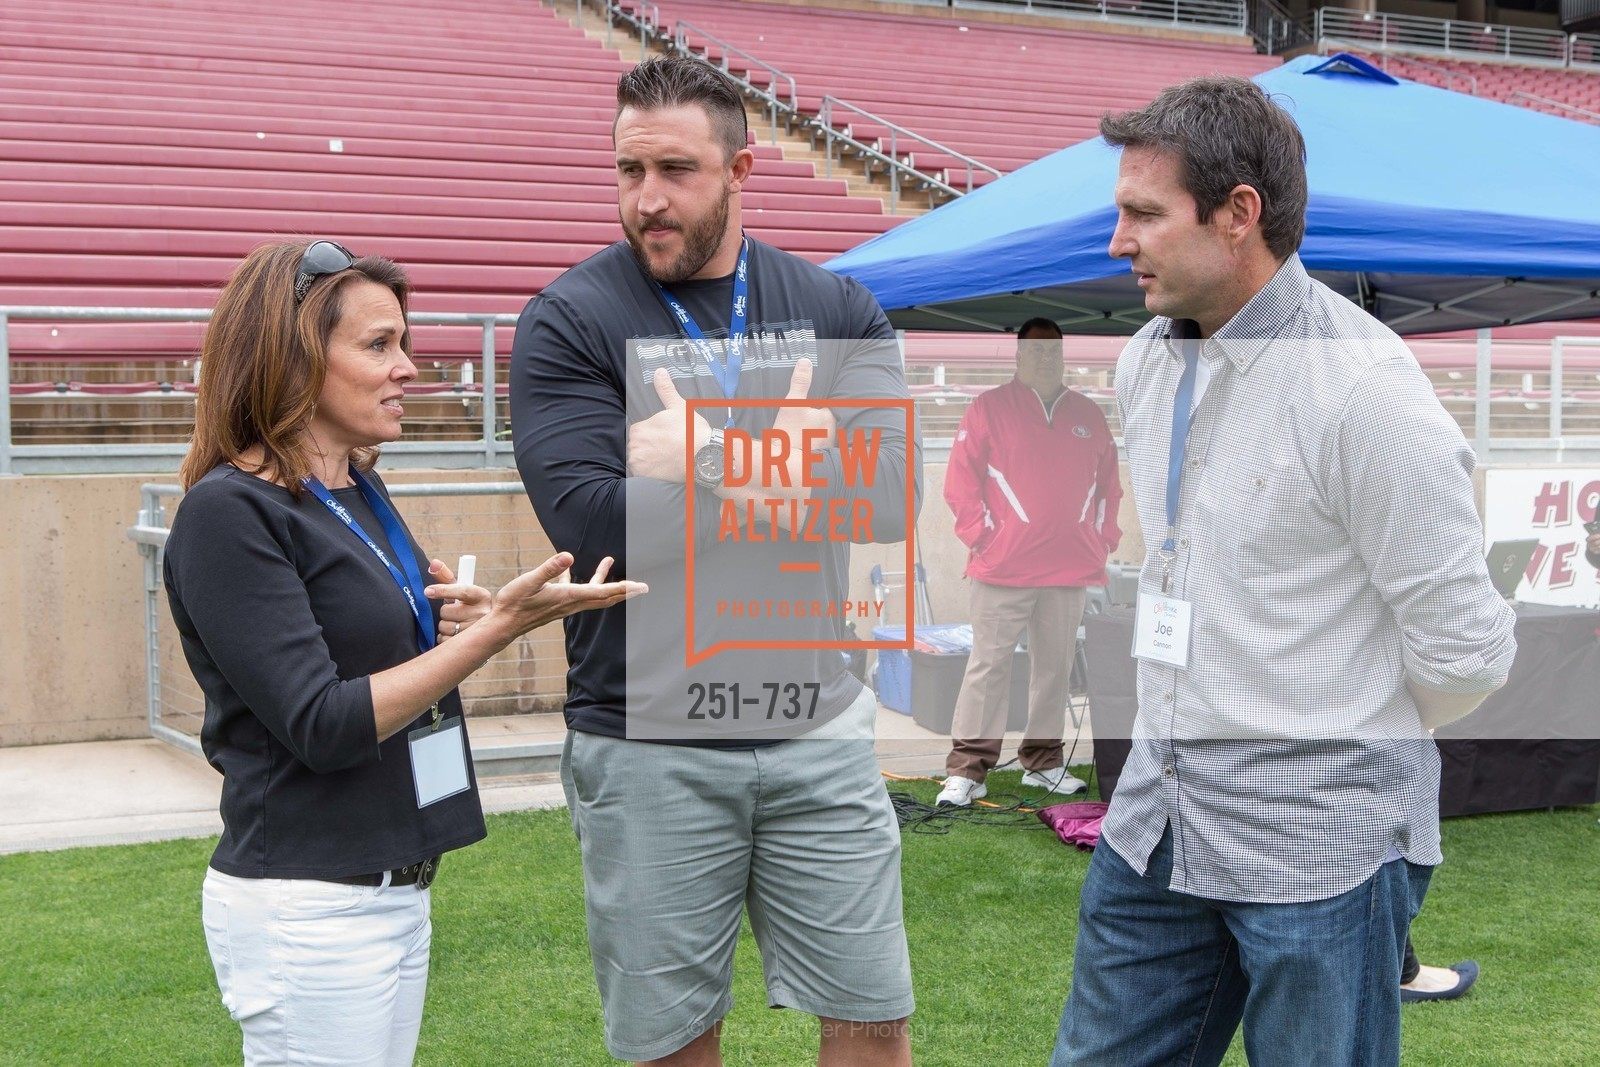 Mindi Bach, Joe Staley, Joe Cannon, Children's Champions, US, May 17th, 2015,Drew Altizer, Drew Altizer Photography, full-service event agency, private events, San Francisco photographer, photographer California